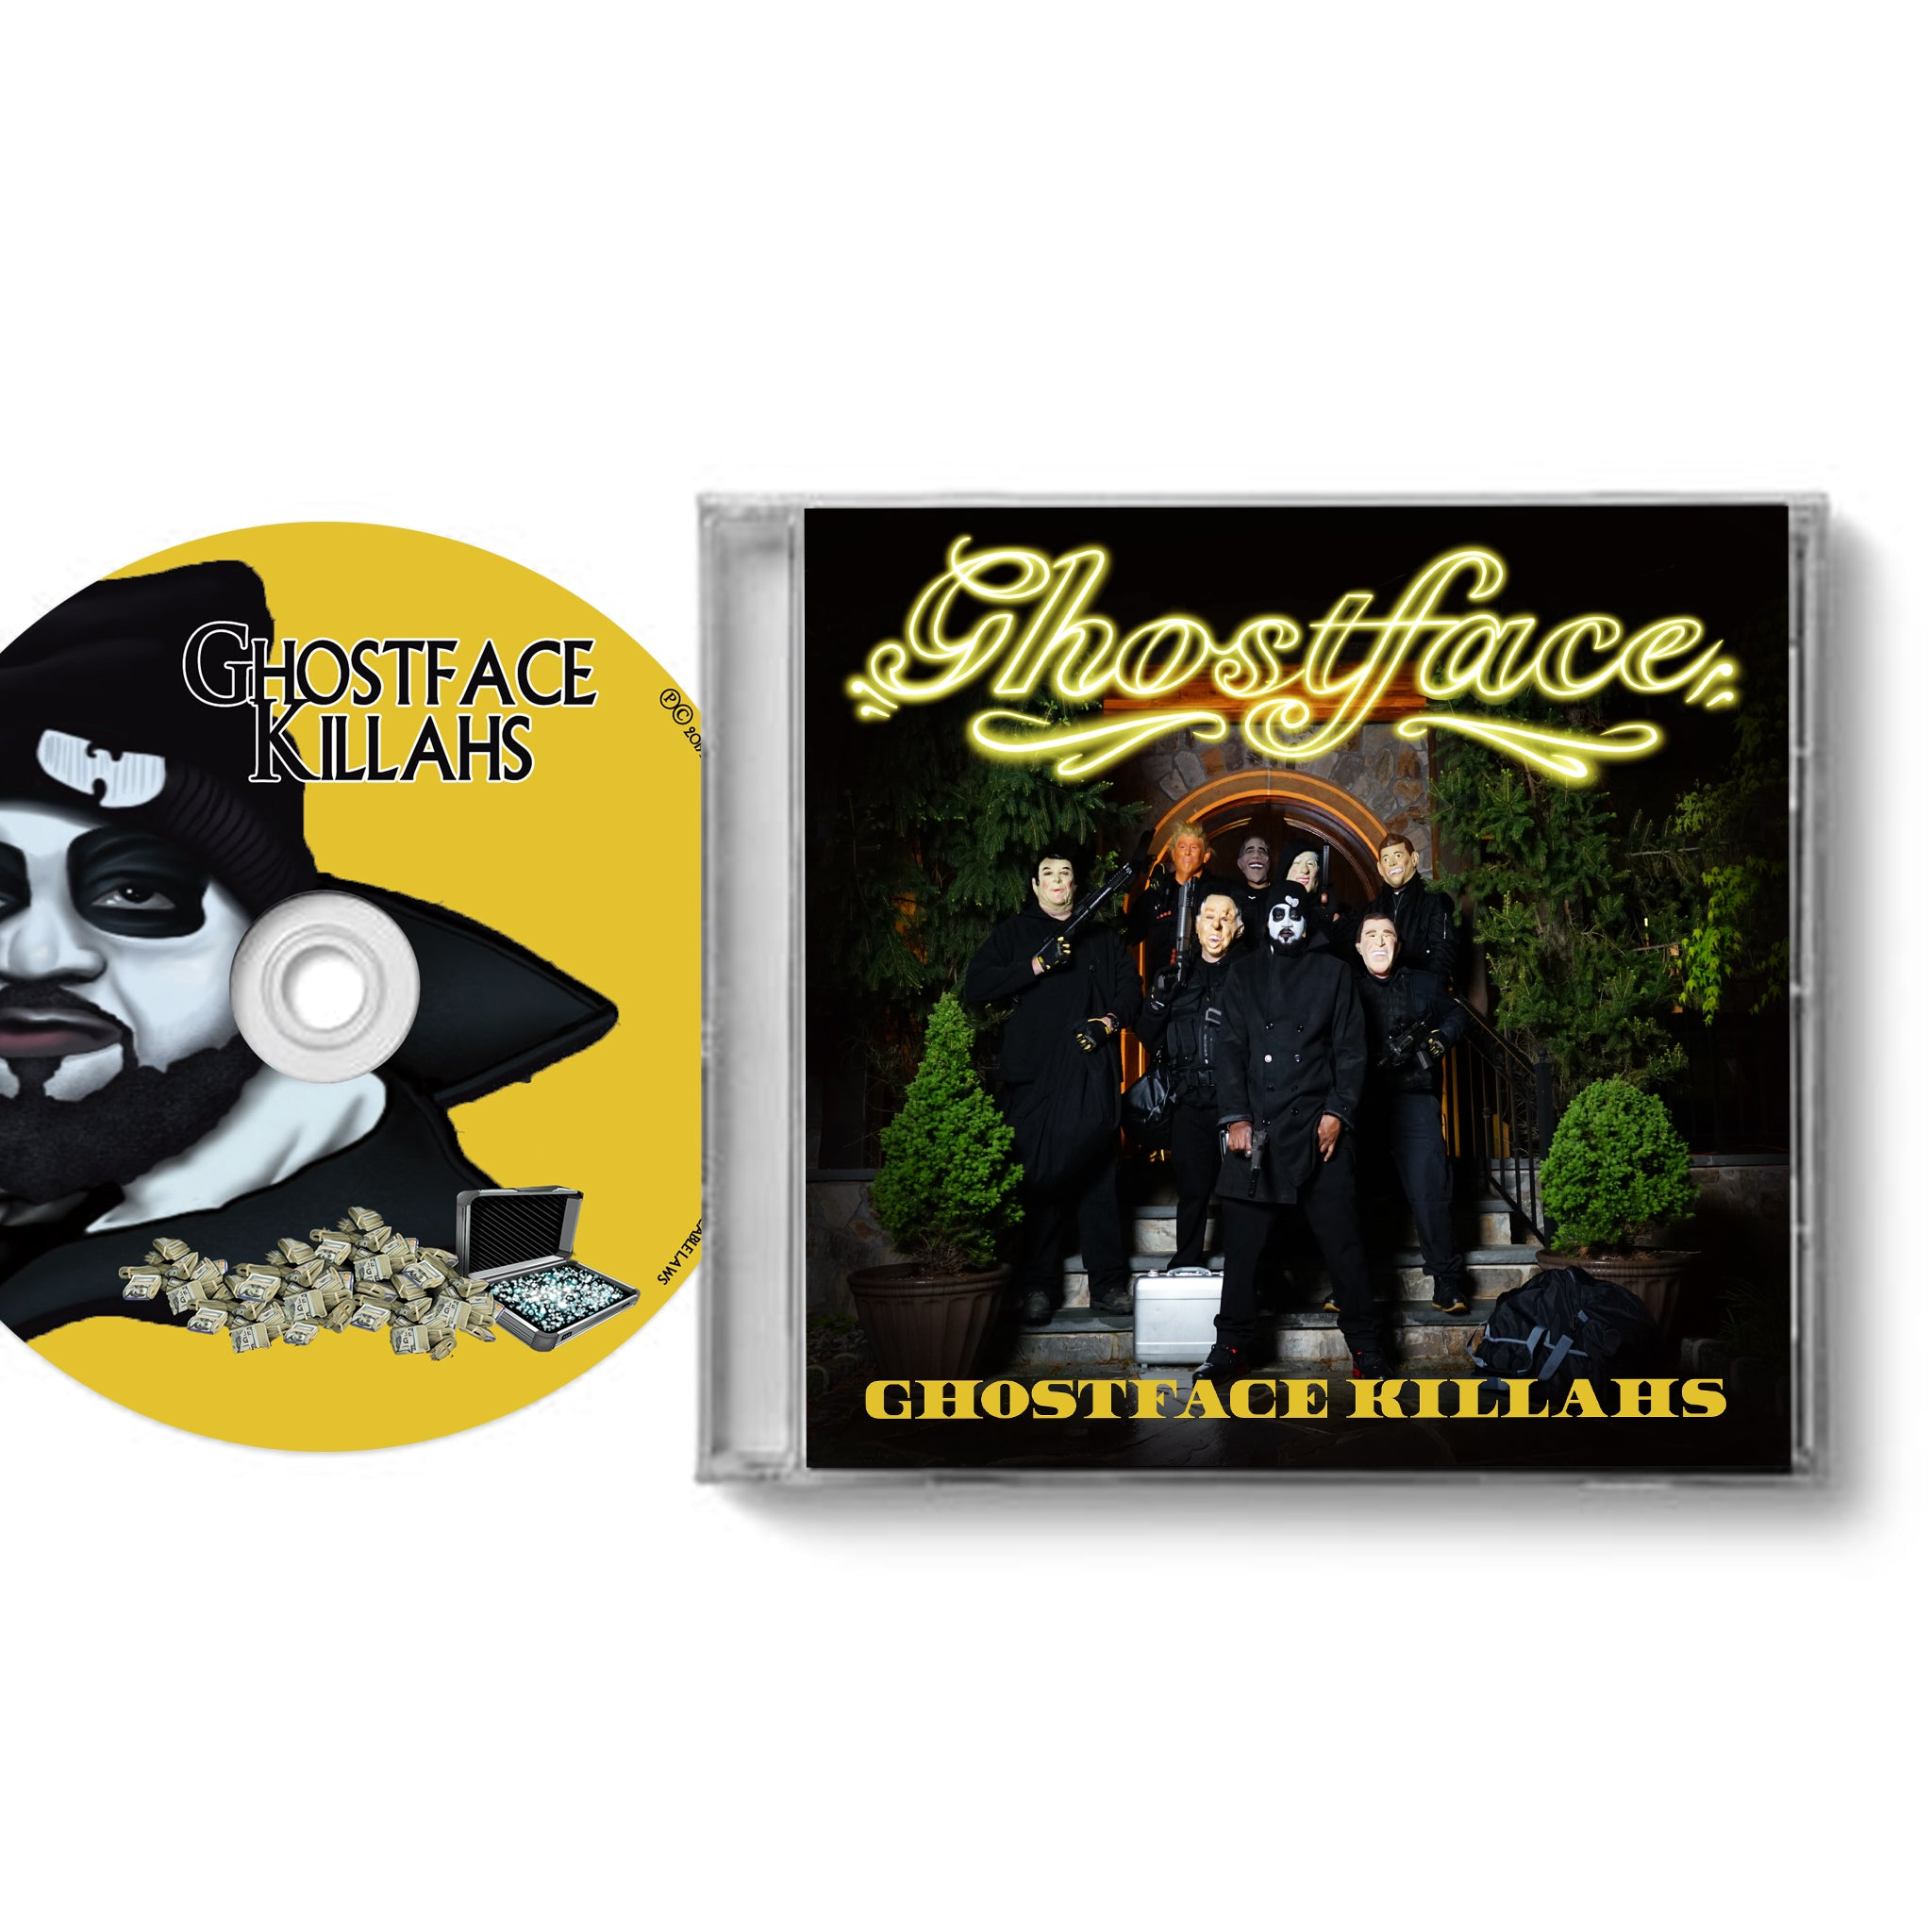 Ghostface Killahs CD